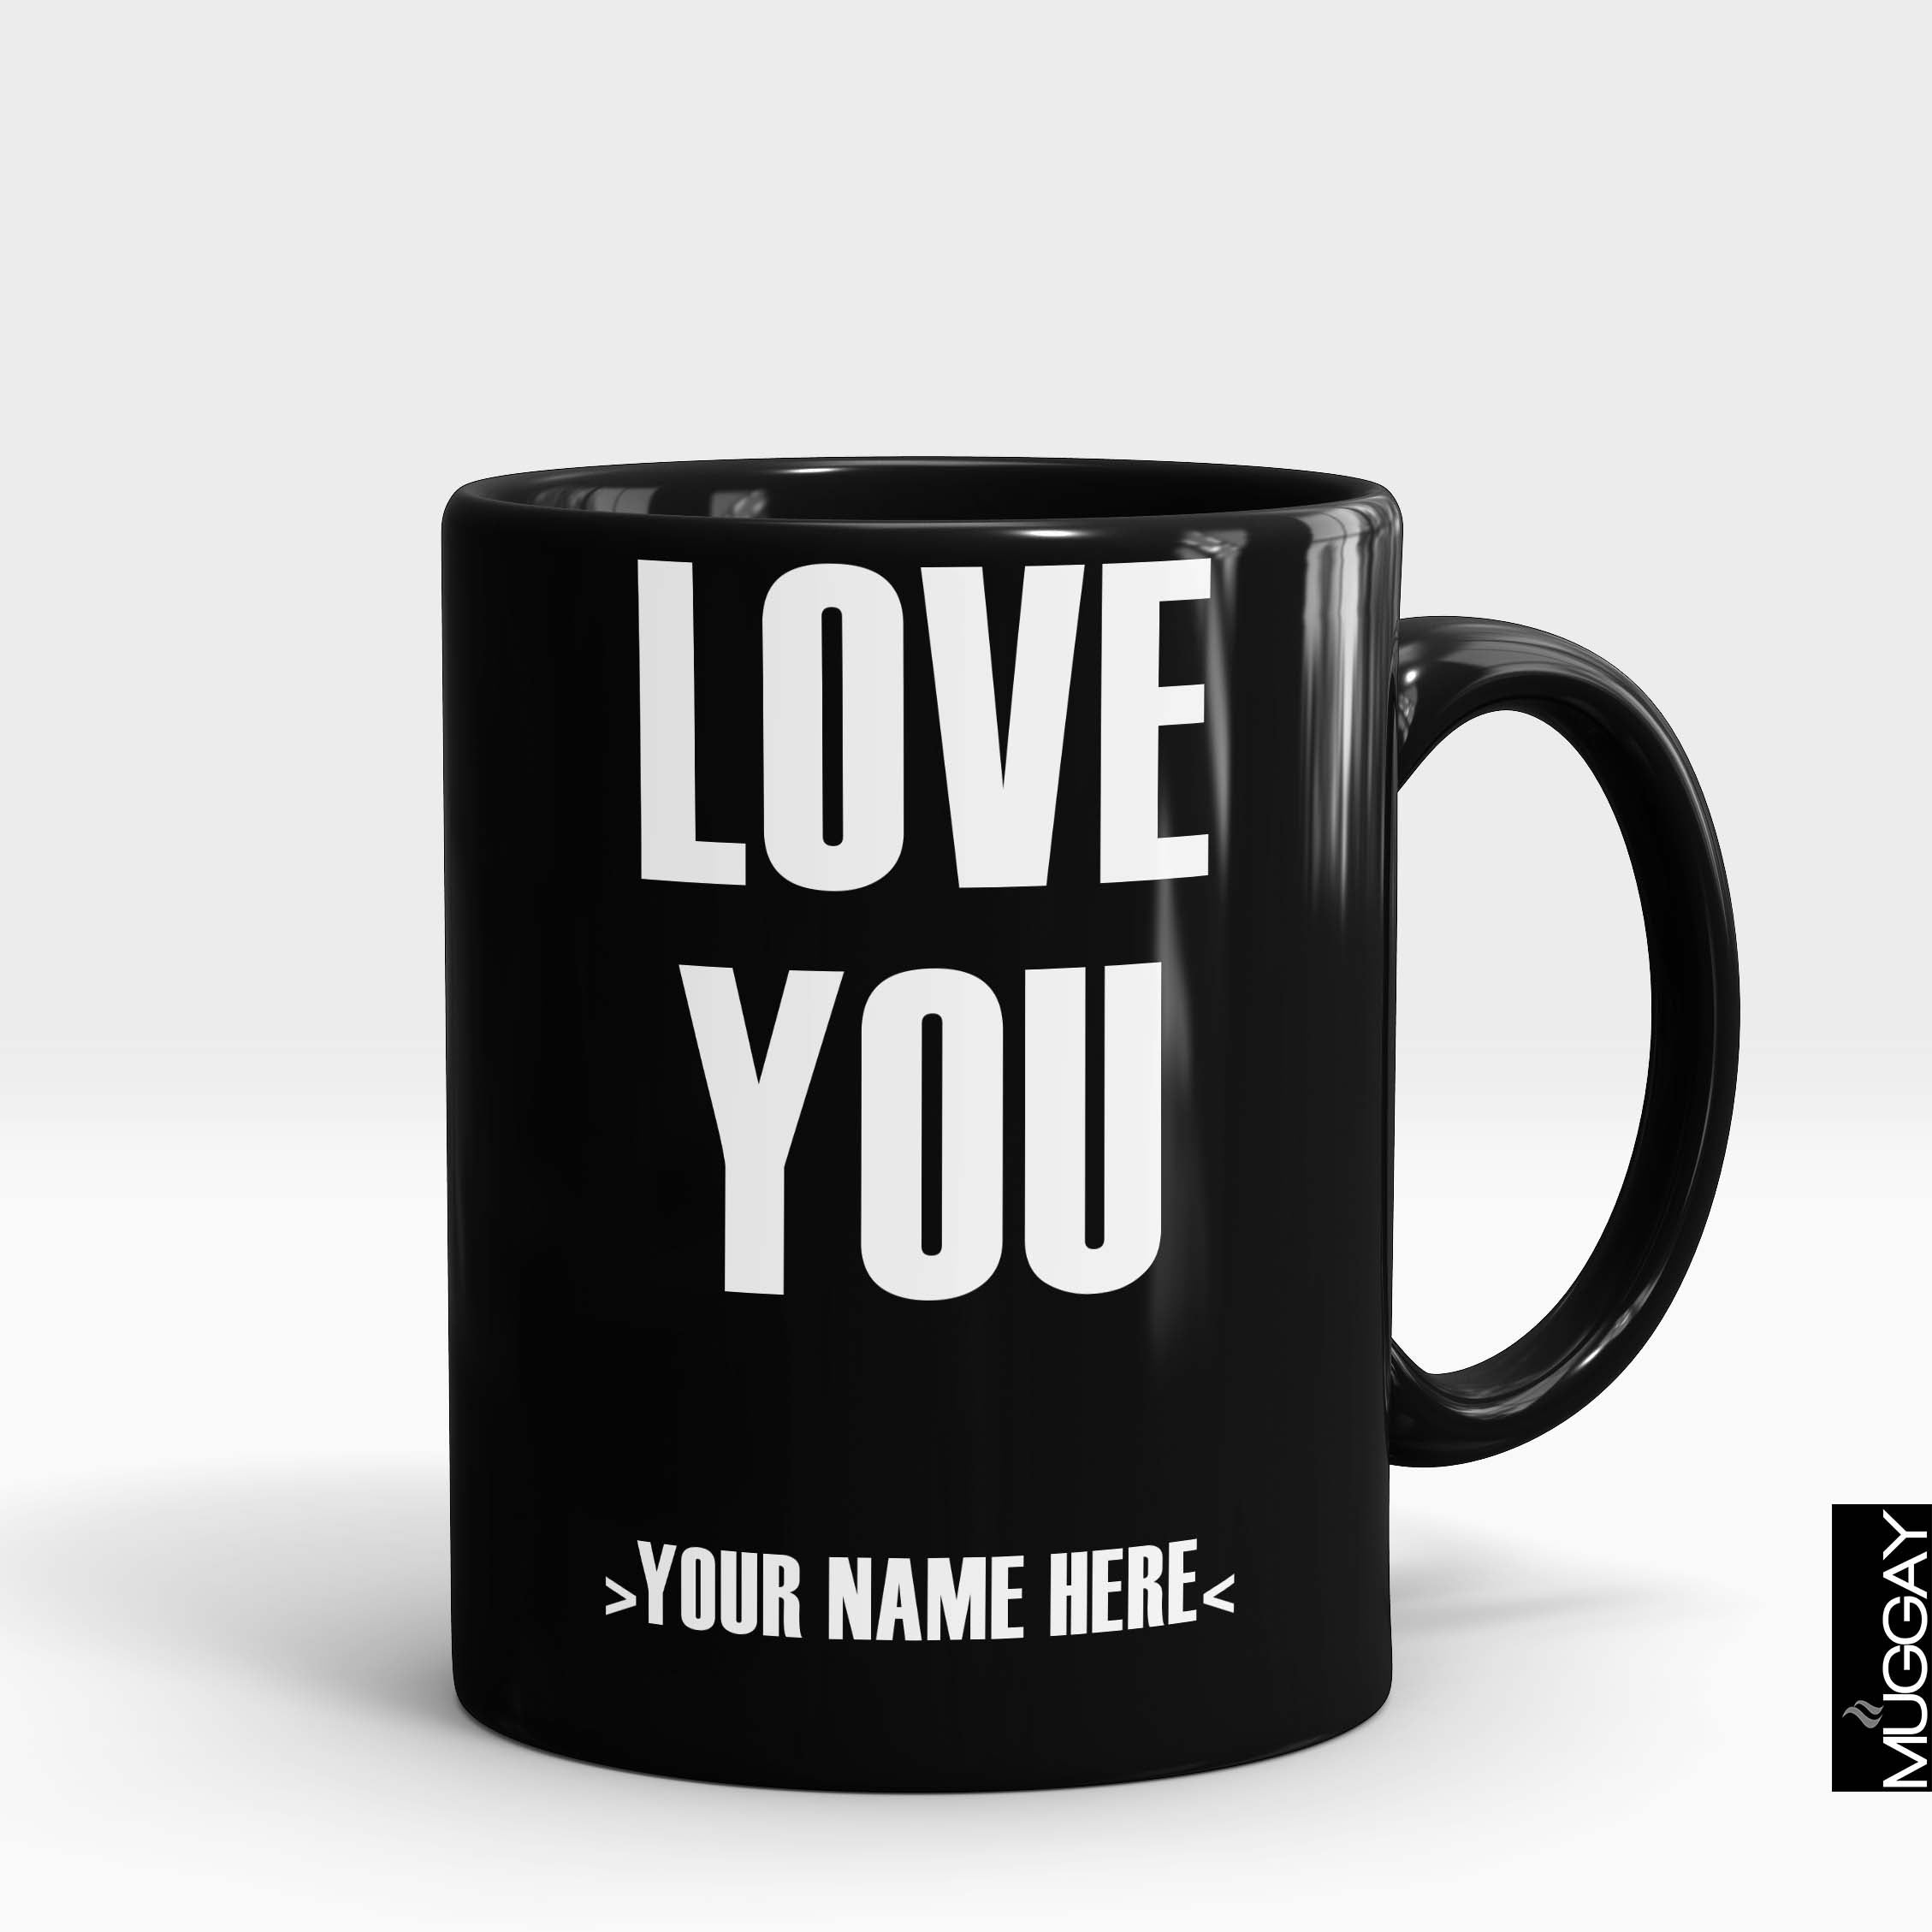 Love you Magic mug with Customized Name